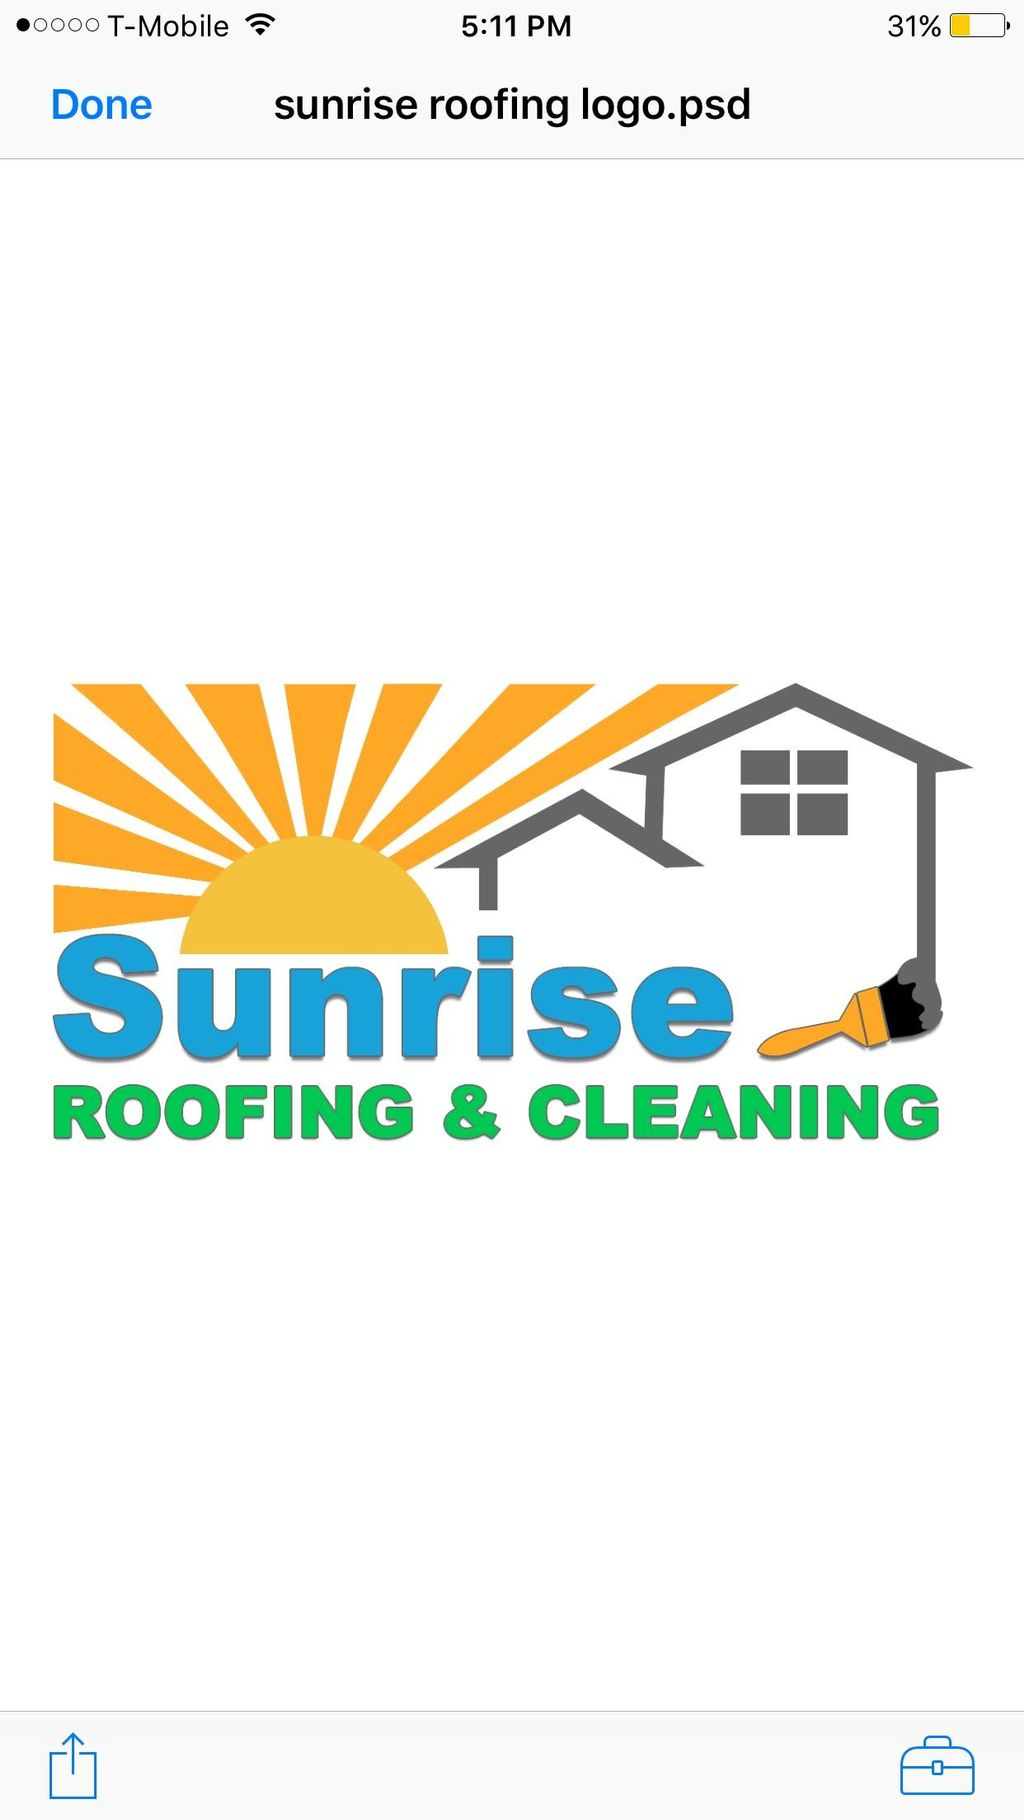 Sunrise Roofing & Cleaning